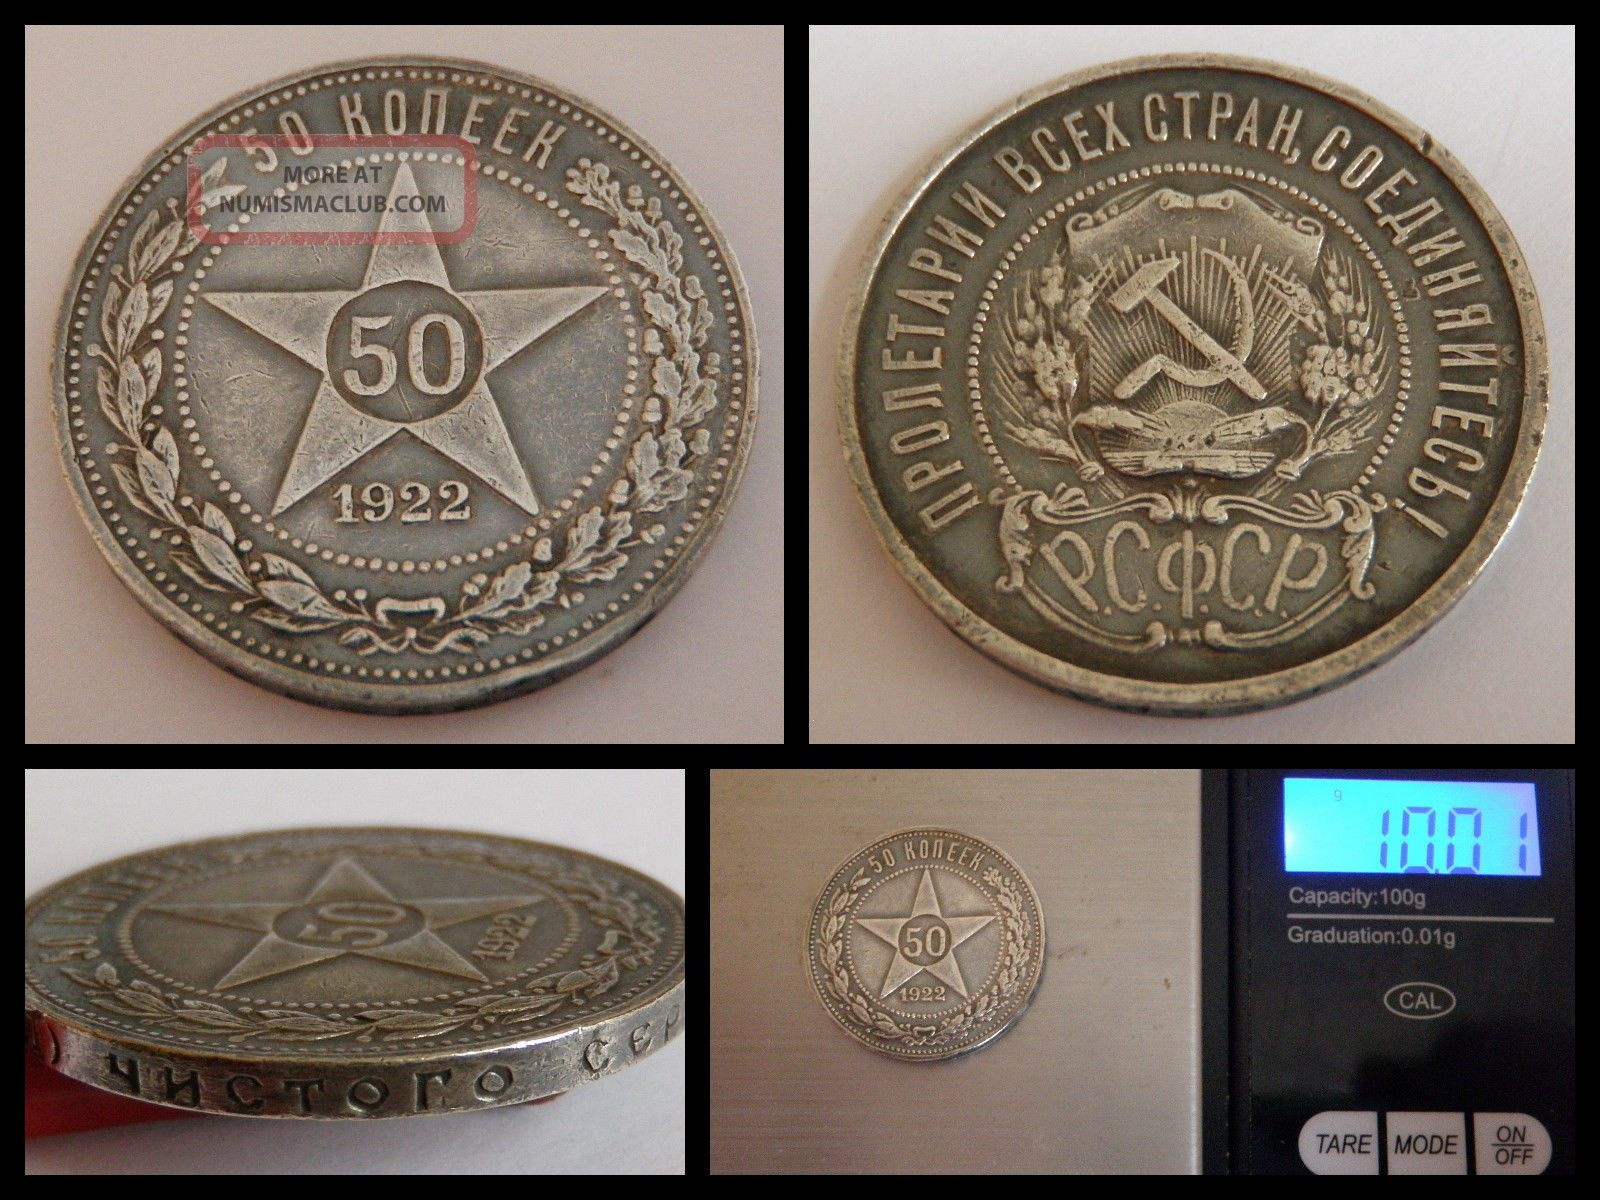 1/2 Rouble 50 Kopeks 1922 Ussr Soviet Era Russian Antique Silver Coin Russia photo